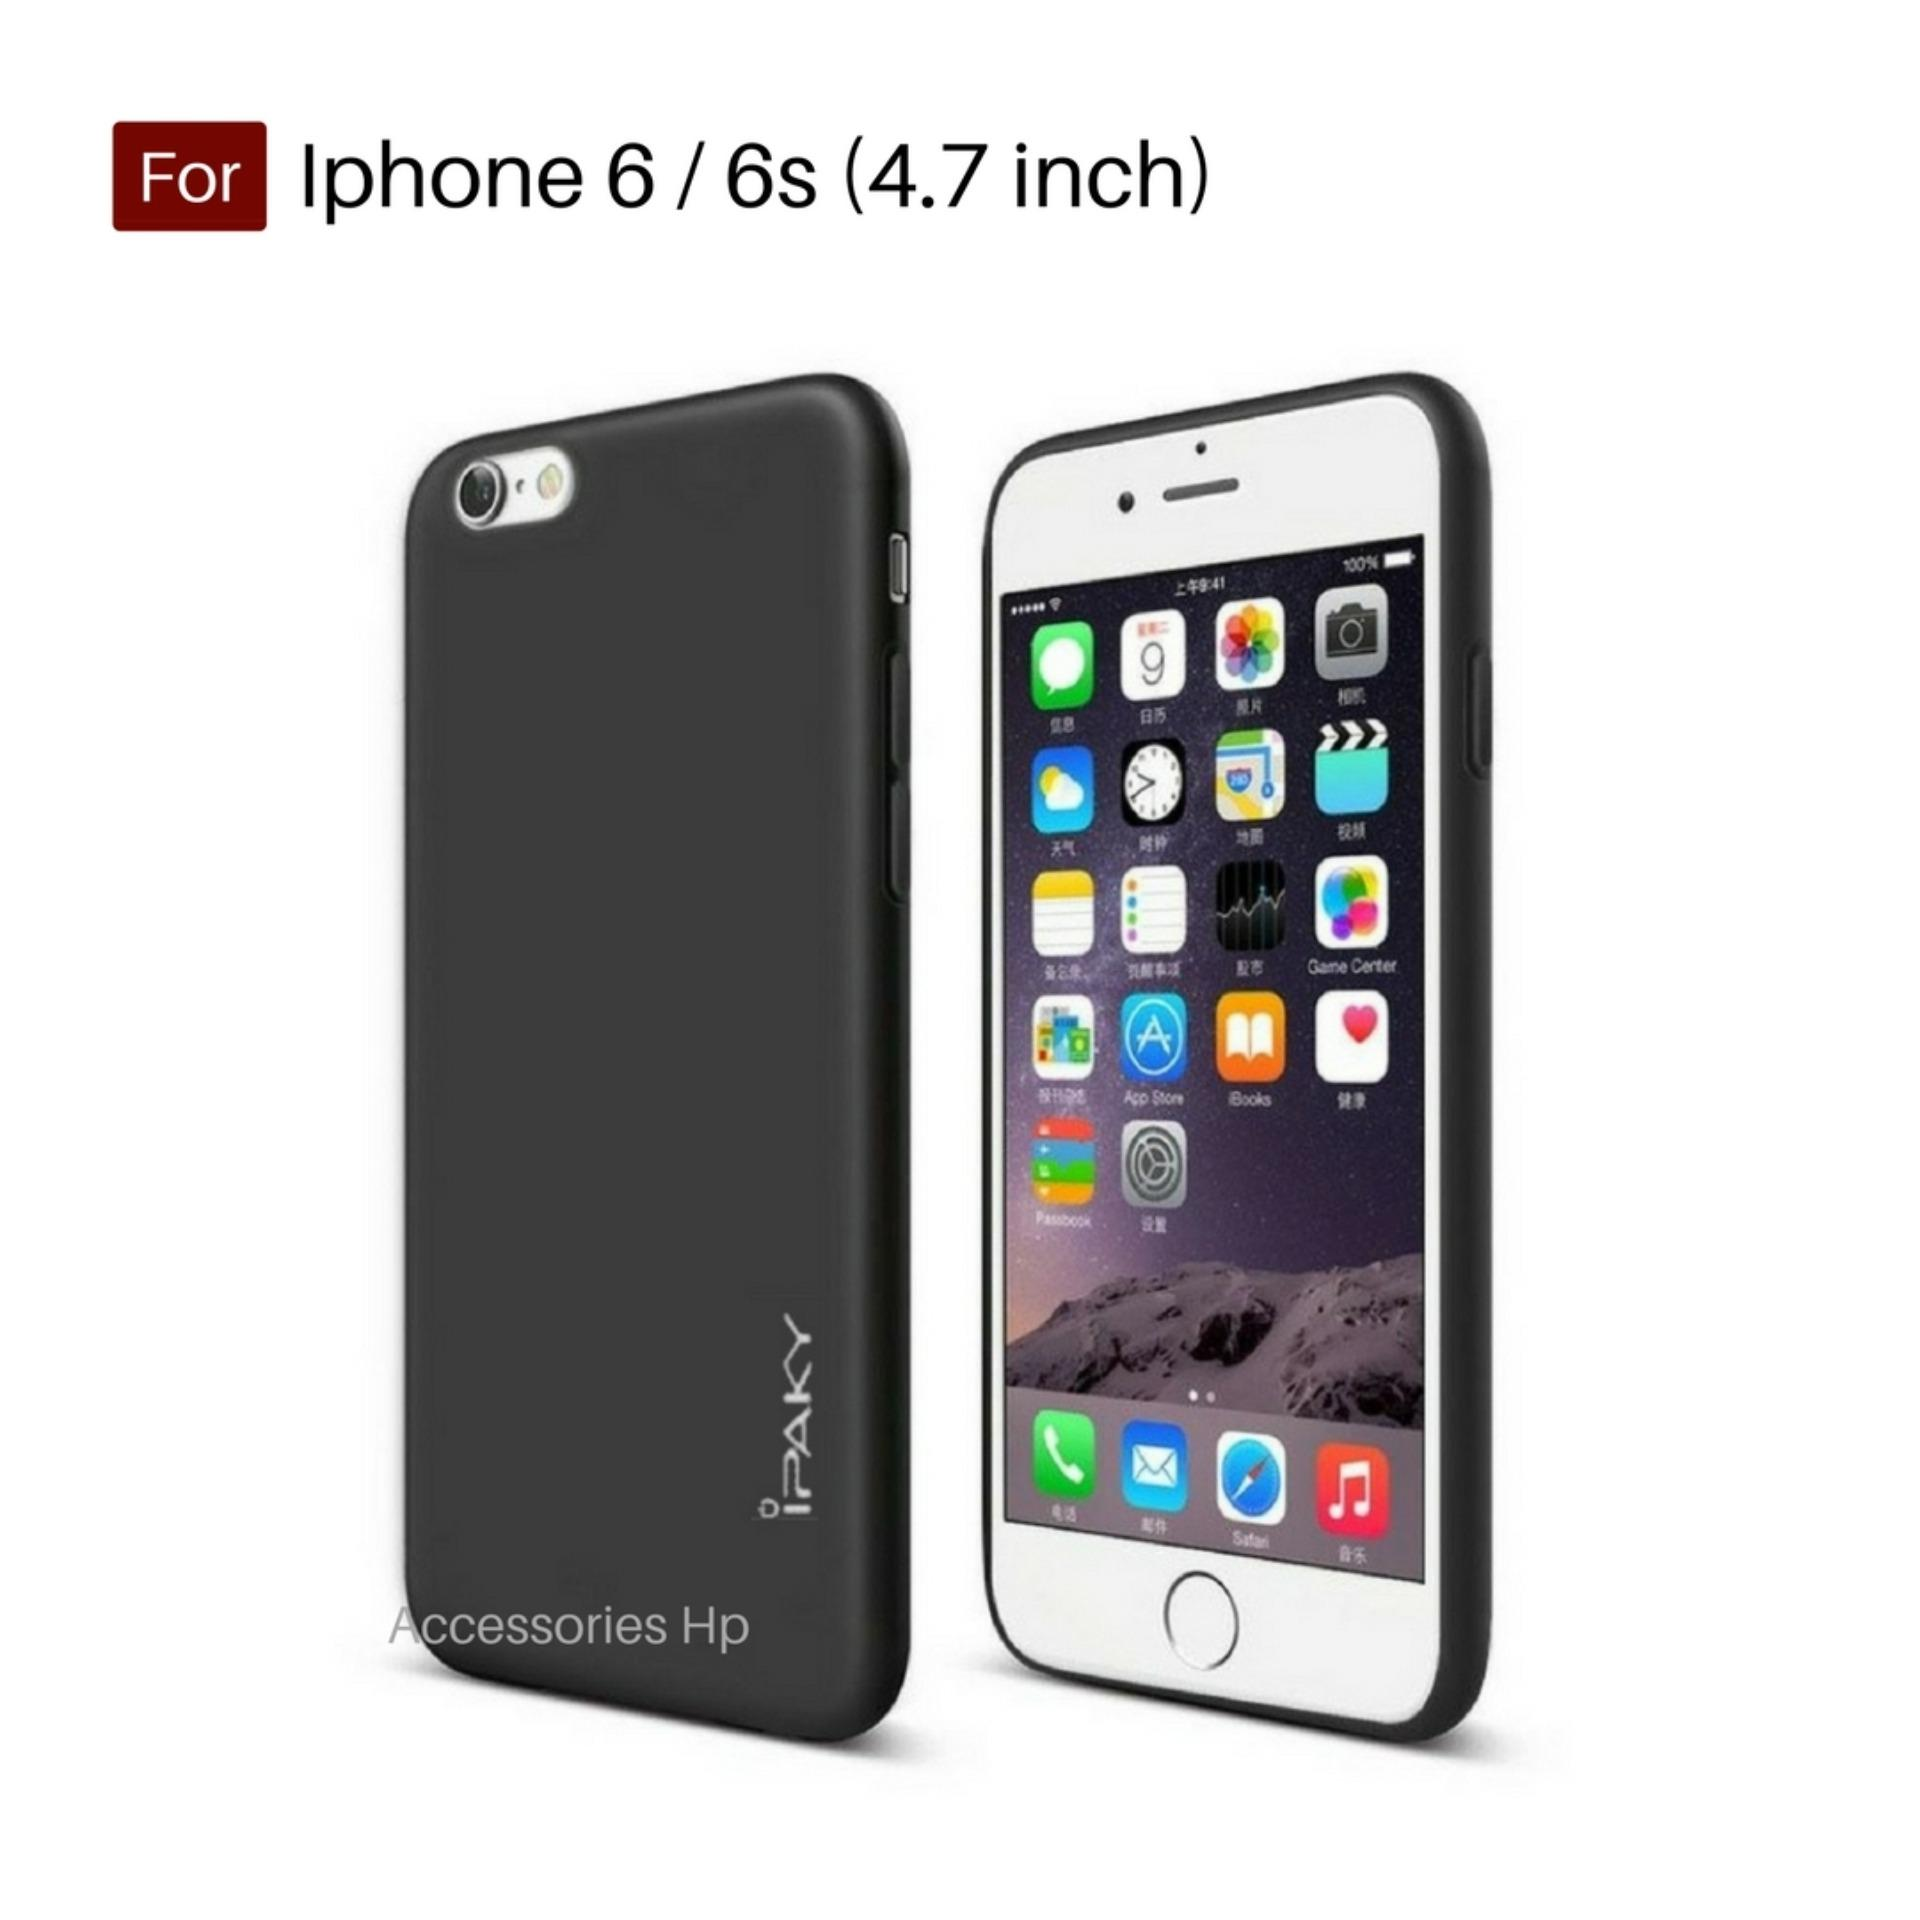 Accessories Hp iPaky Super Slim Matte Anti Fingerprint Hybrid Case For Iphone 6 / 6s (